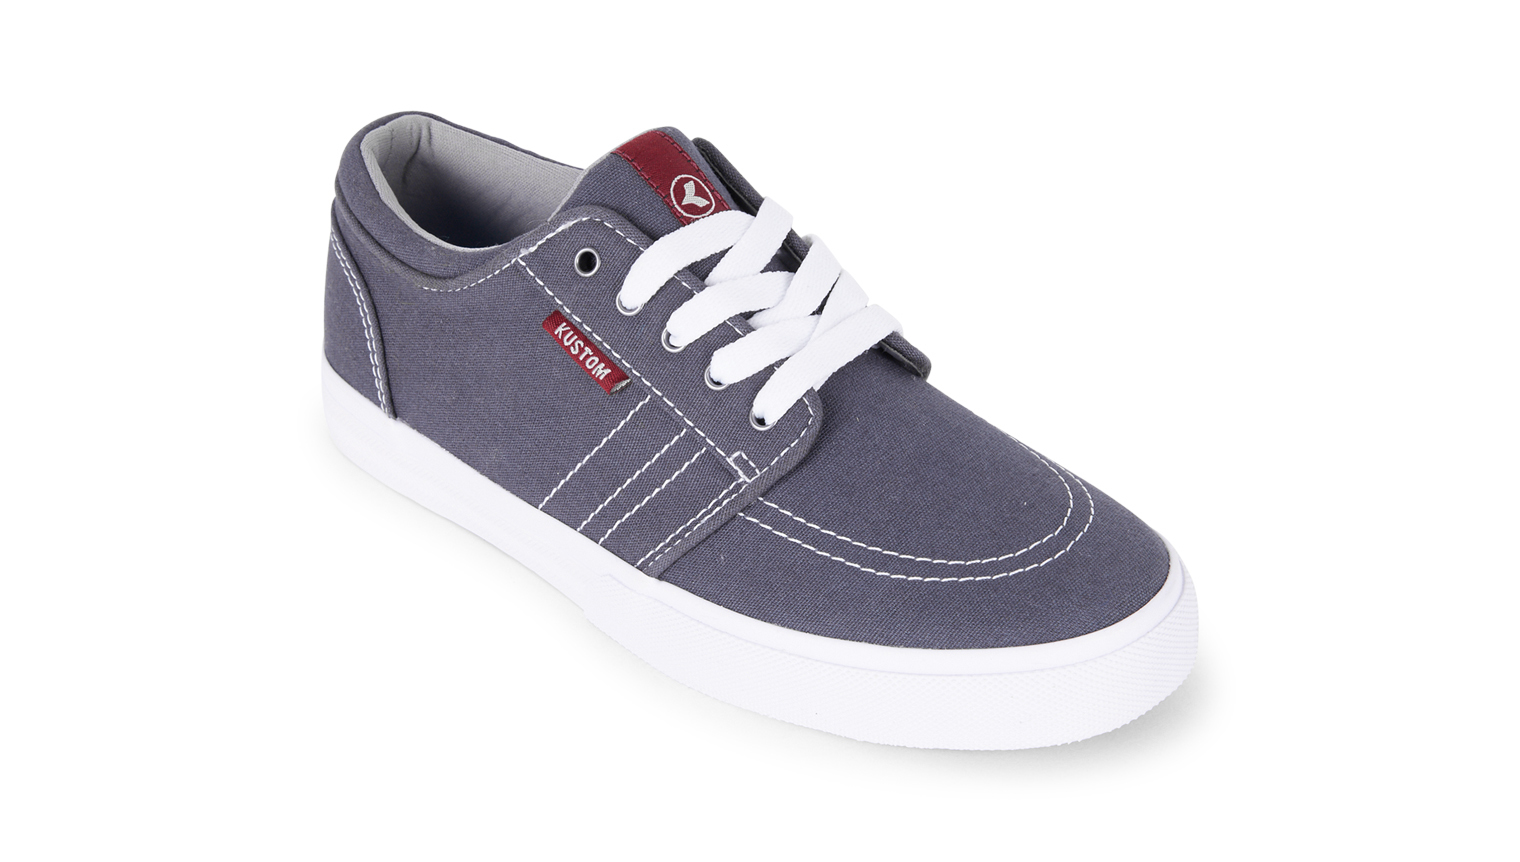 KUSTOM SHOES BOYS REMARK SHOE / STEEL BLUE